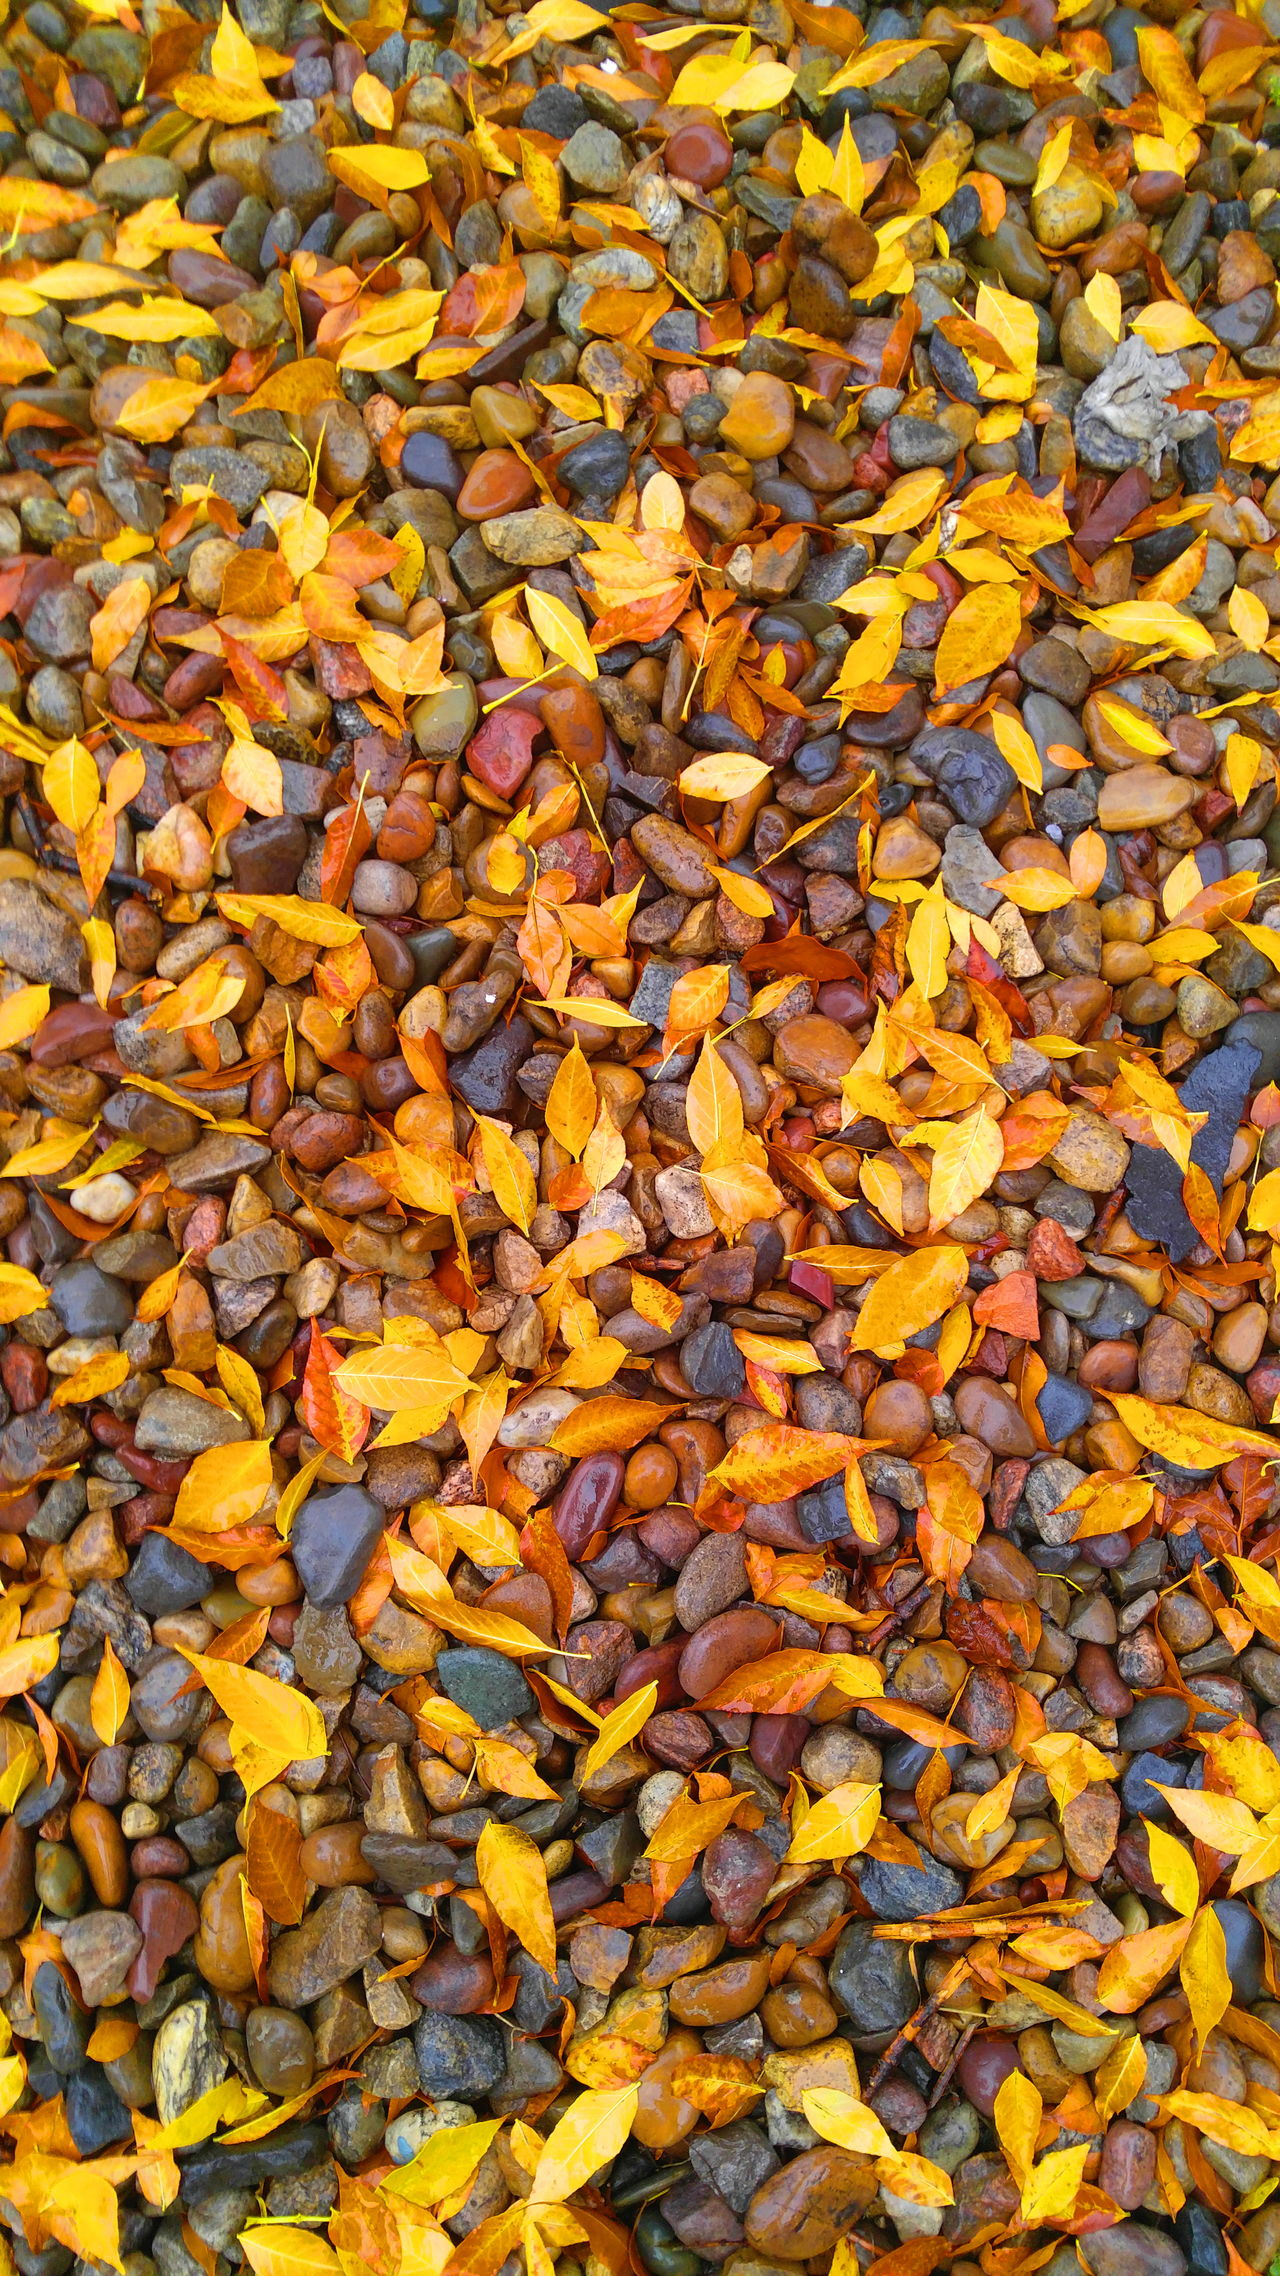 TakeoverContrast Autumn Leaf Change Season  Backgrounds Full Frame Yellow Leaves High Angle View Dry Field Fallen Close-up Abundance Nature Large Group Of Objects Day Fragility Outdoors Vibrant Color Check This Out BigSkyCountry